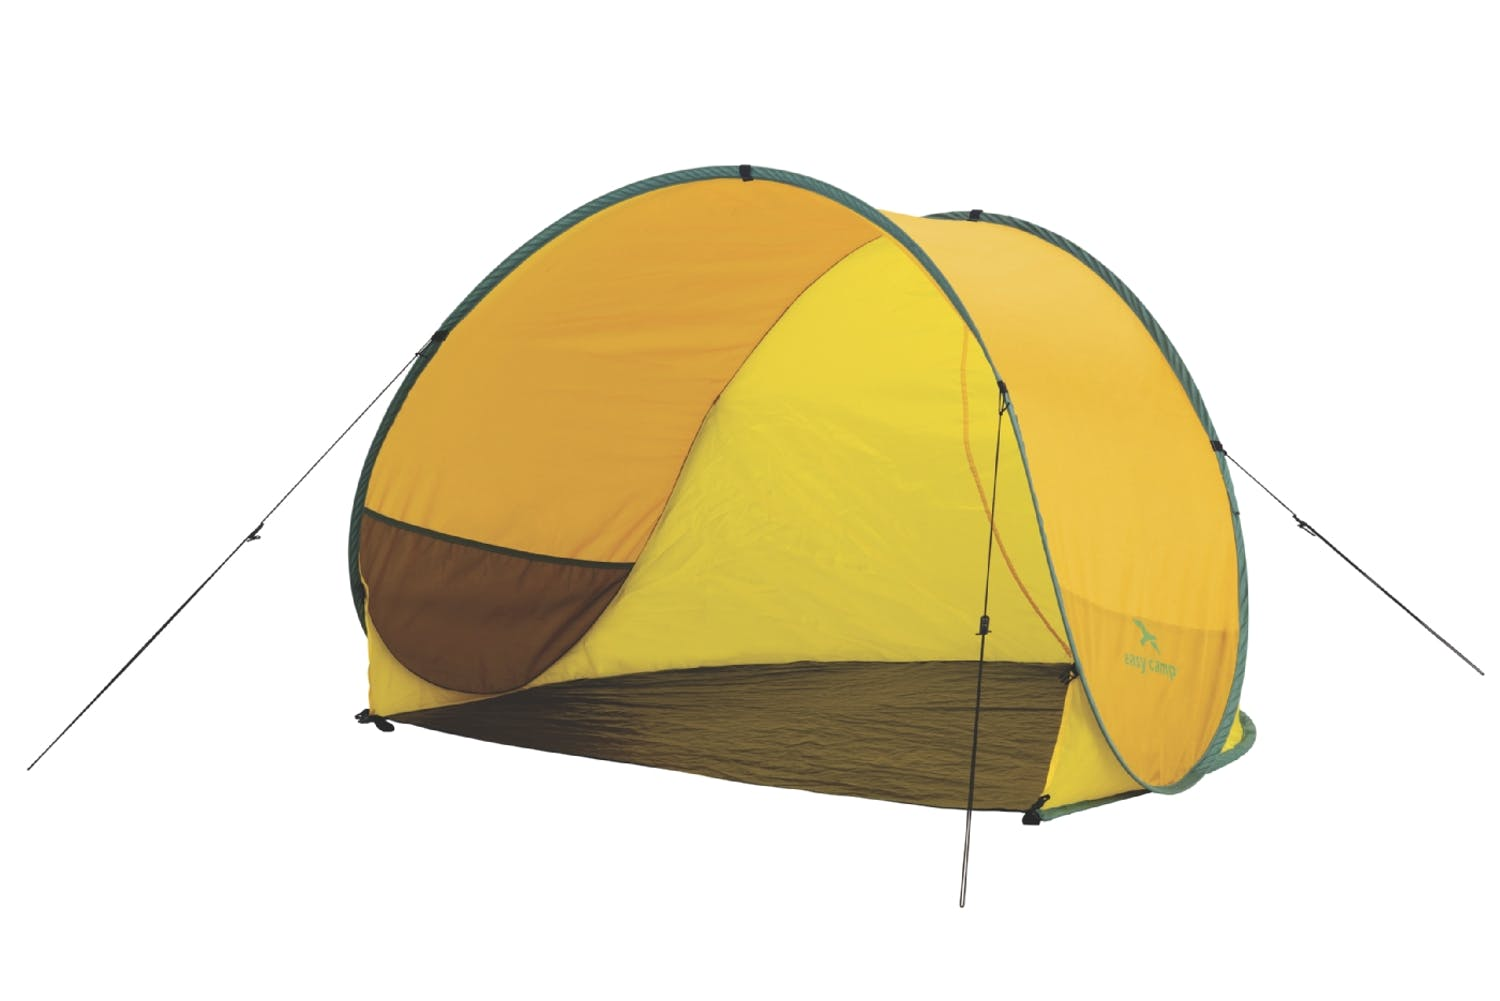 easy camp Strand tent - Ocean